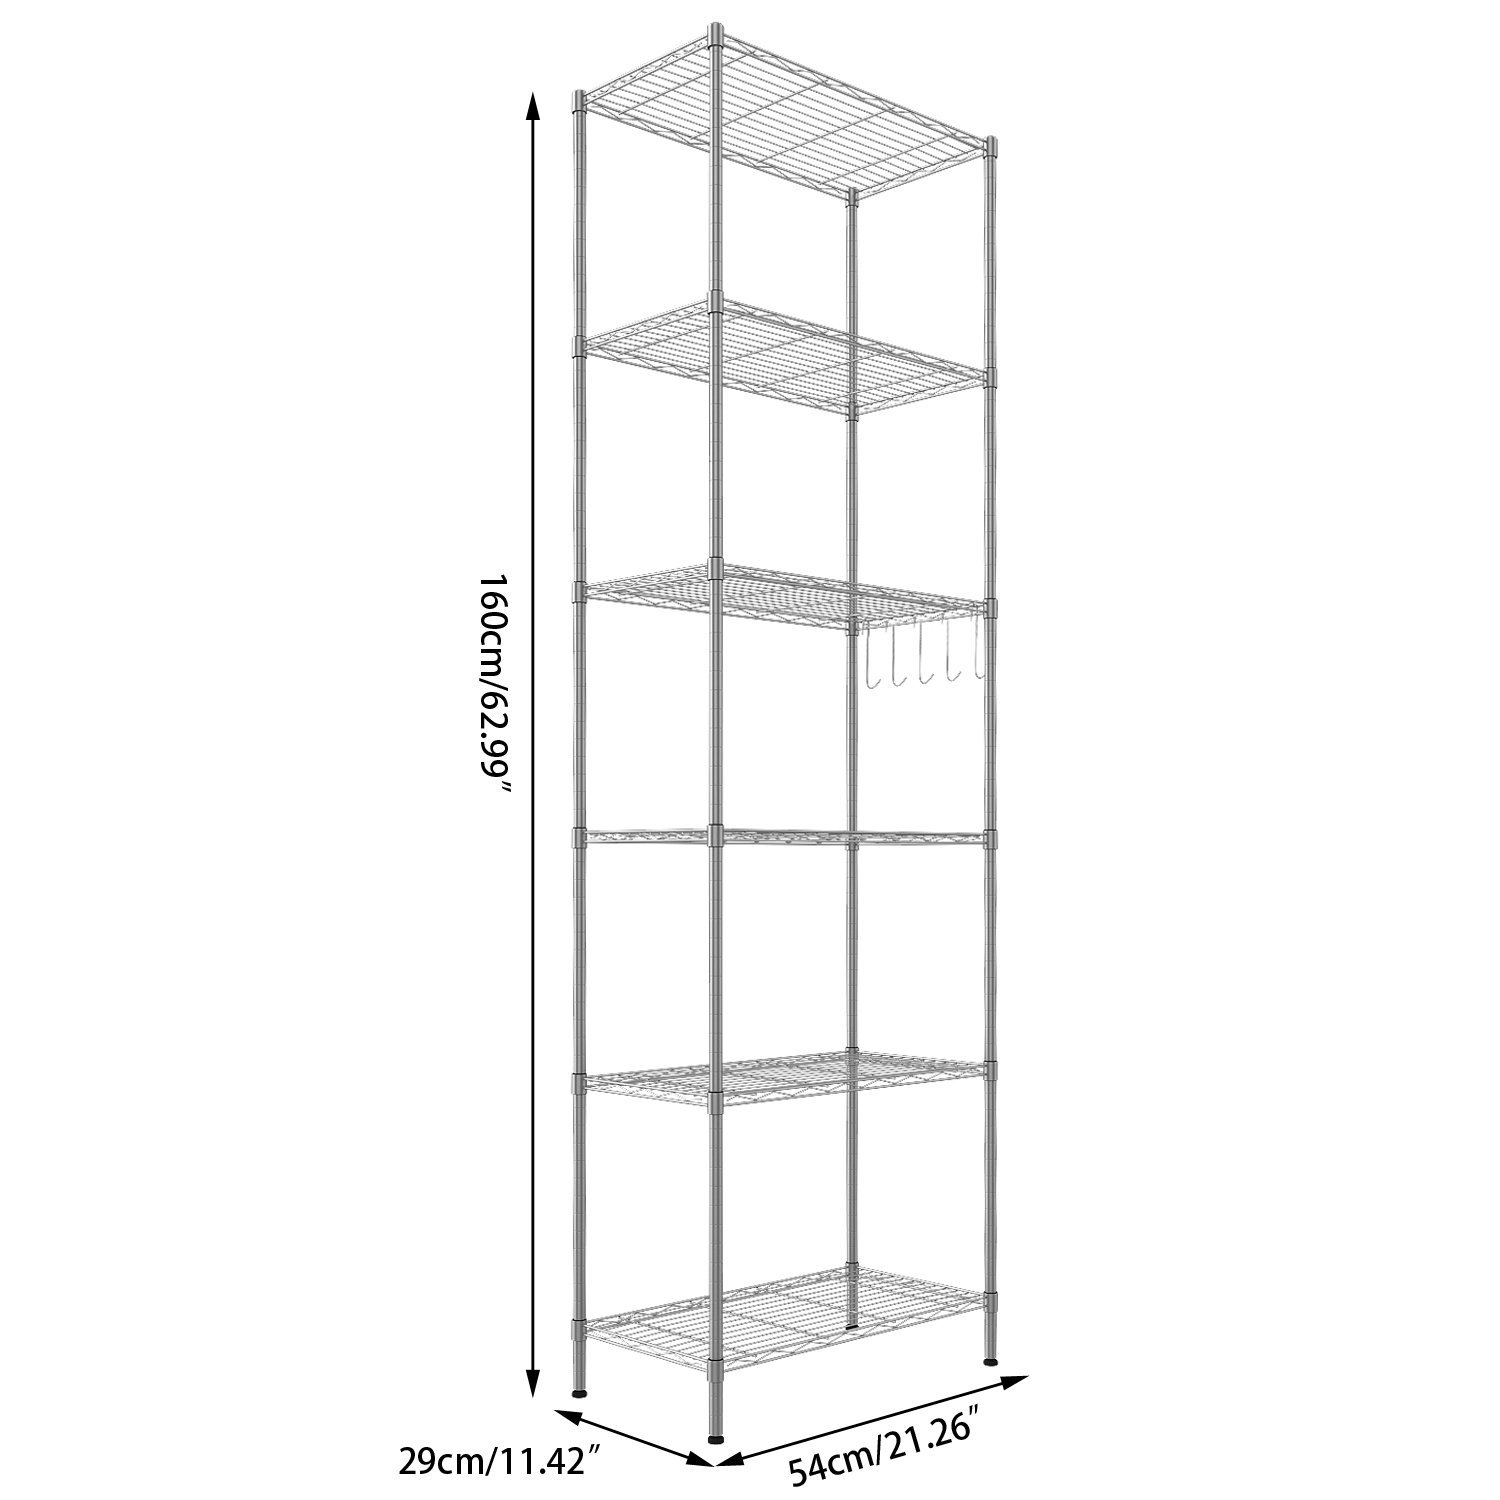 Buy Mulsh Wire Shelving 4 Tier Metal Wire Shelf Storage Rack